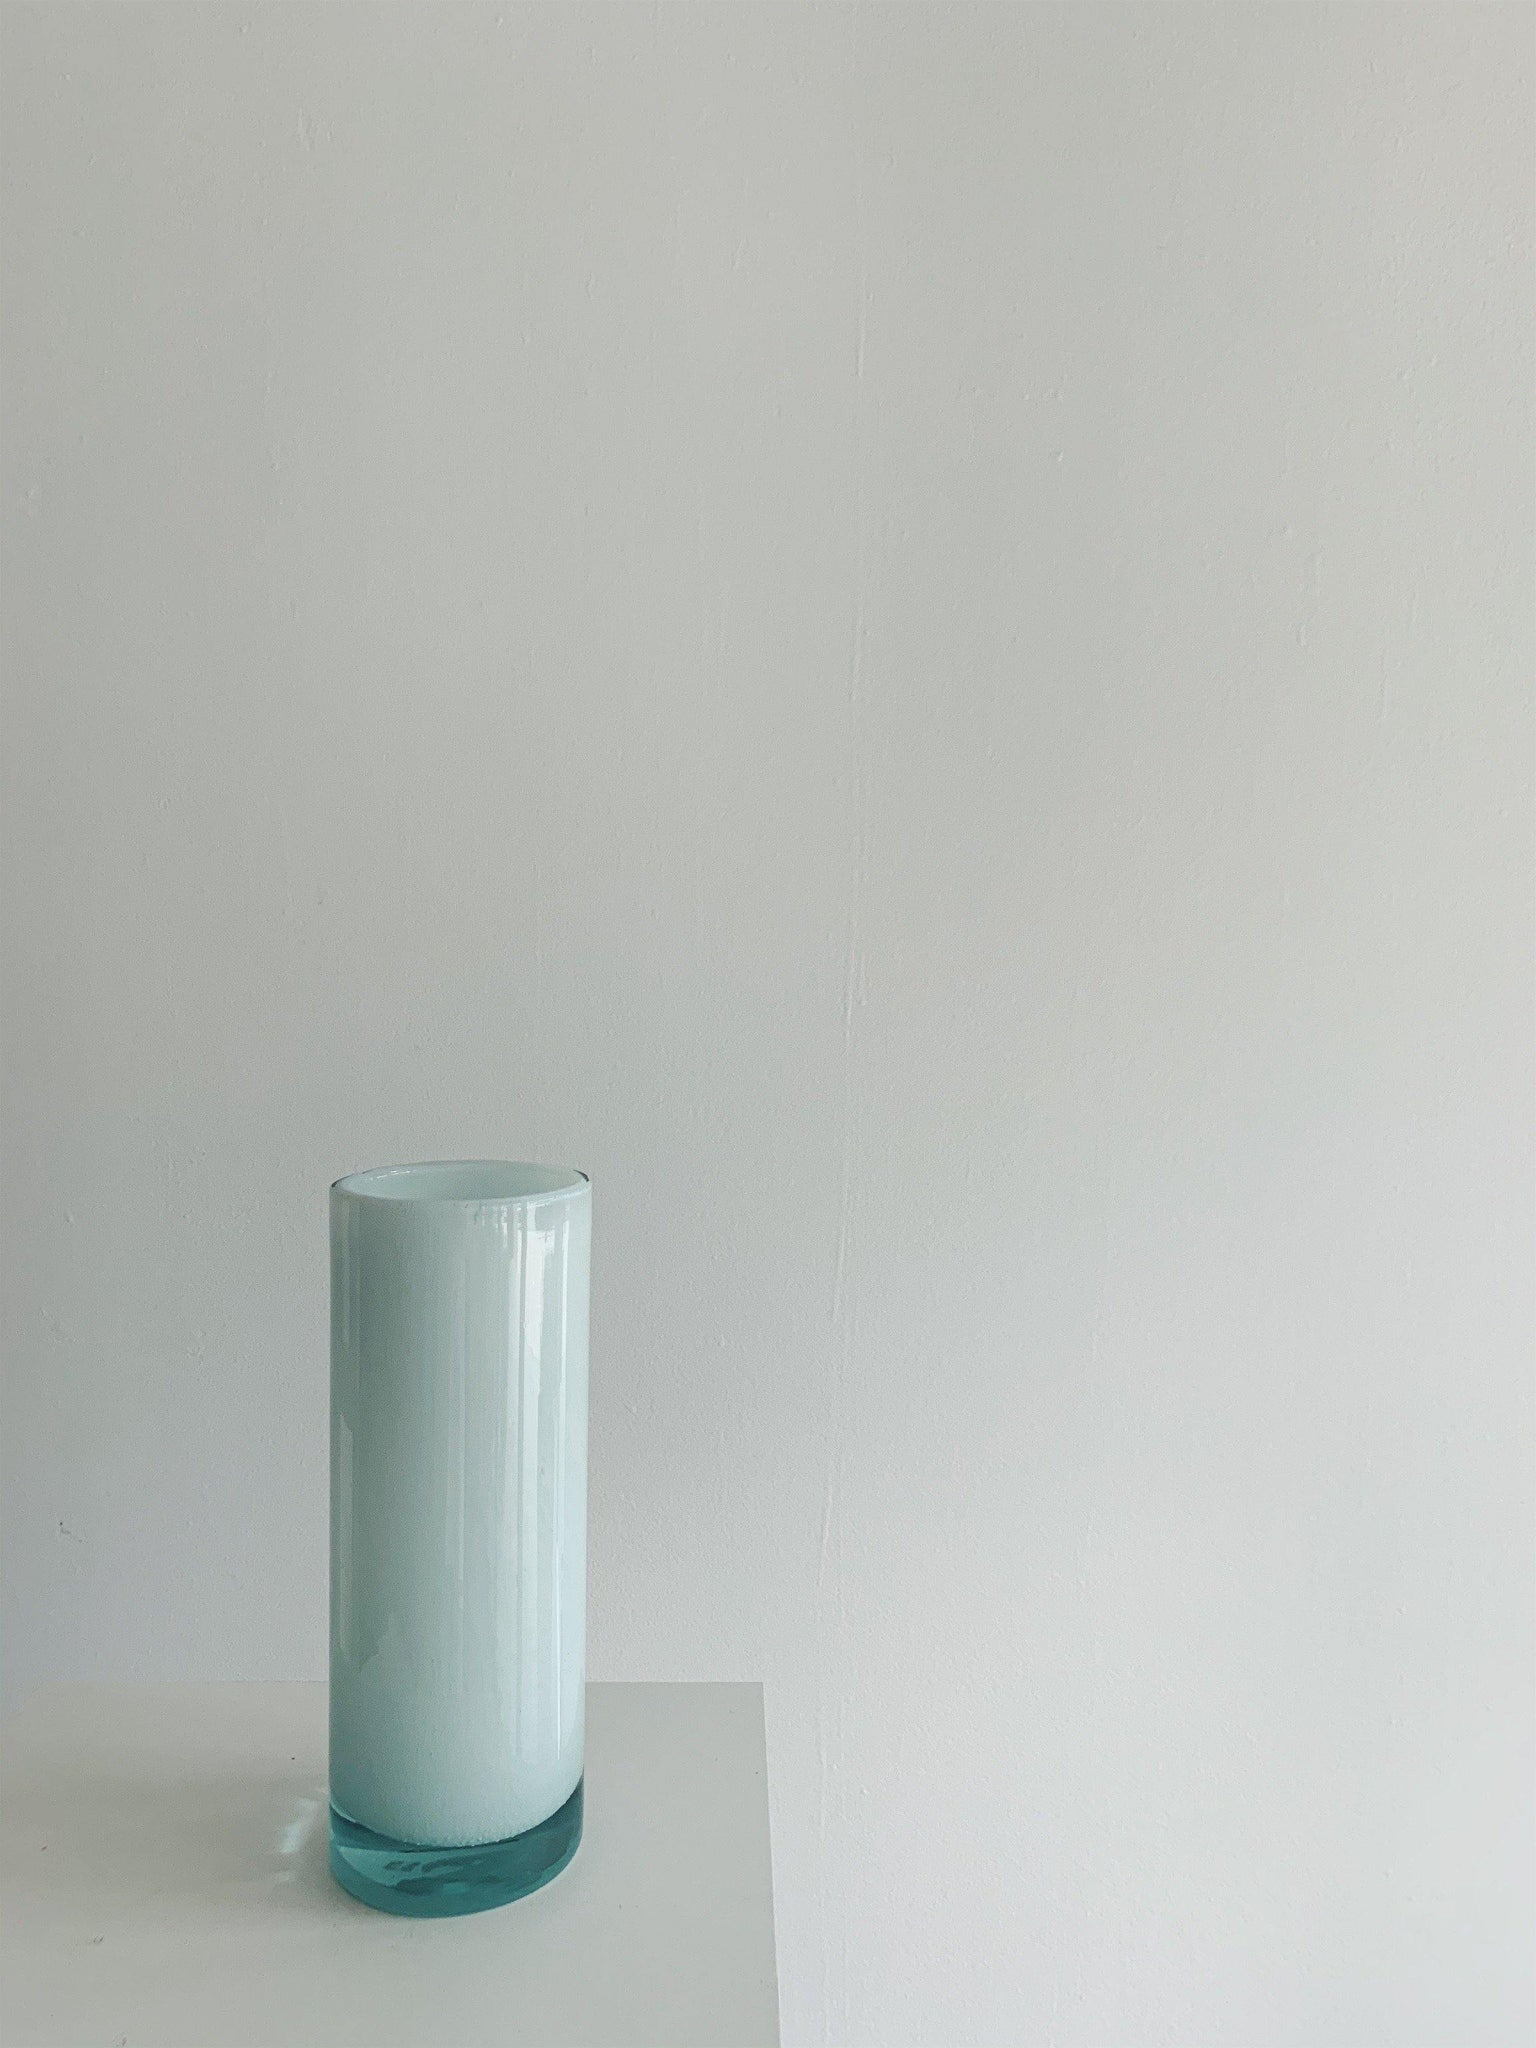 Belgian House Glass Vase - White Blue Cylinder